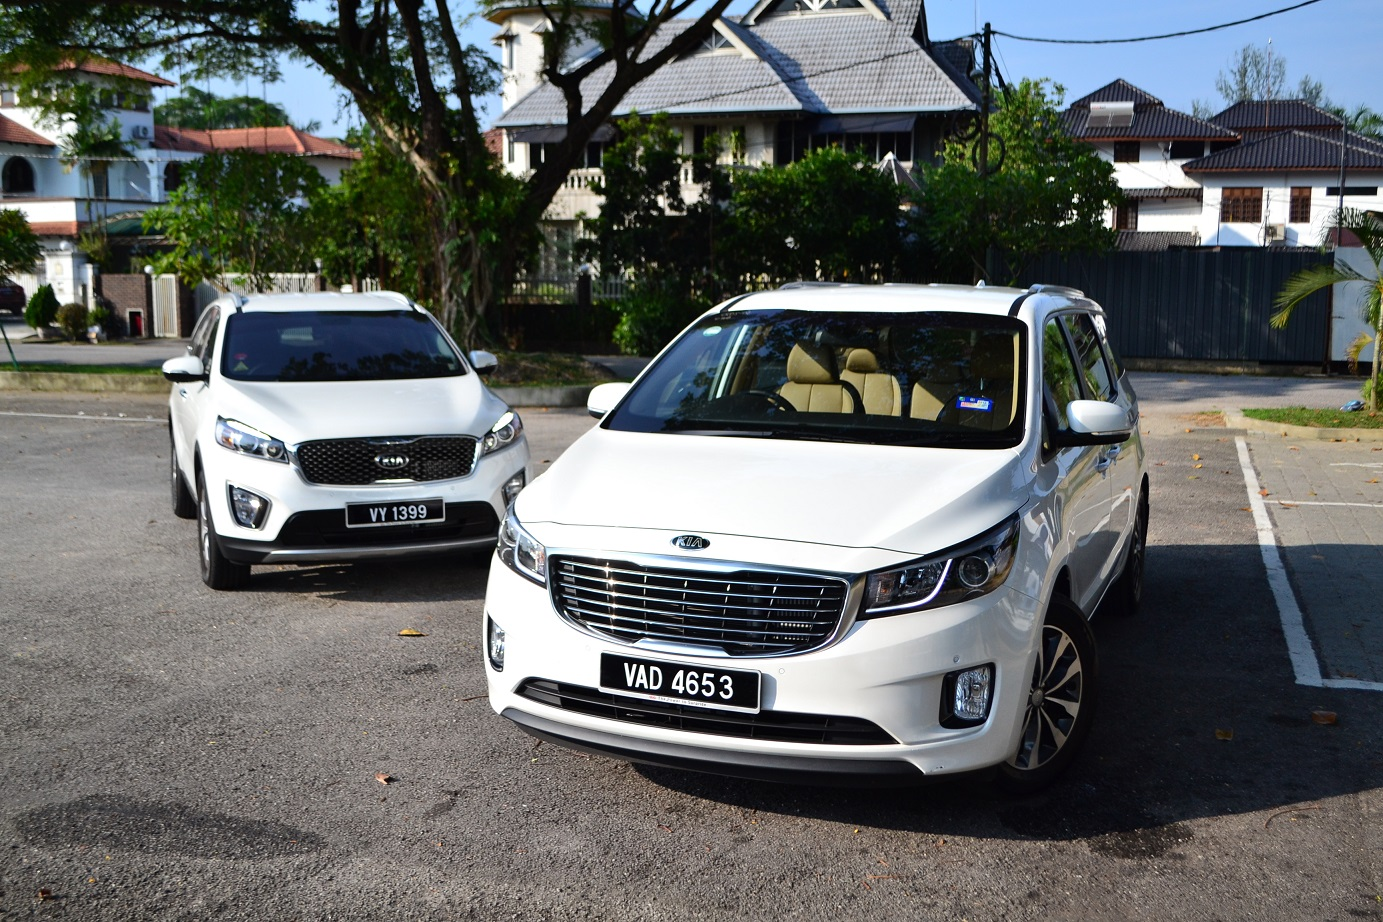 hight resolution of from a design perspective both the sorento and carnival look good with a large grille in the center flanked by sweeping headlamps that s accentuated by a